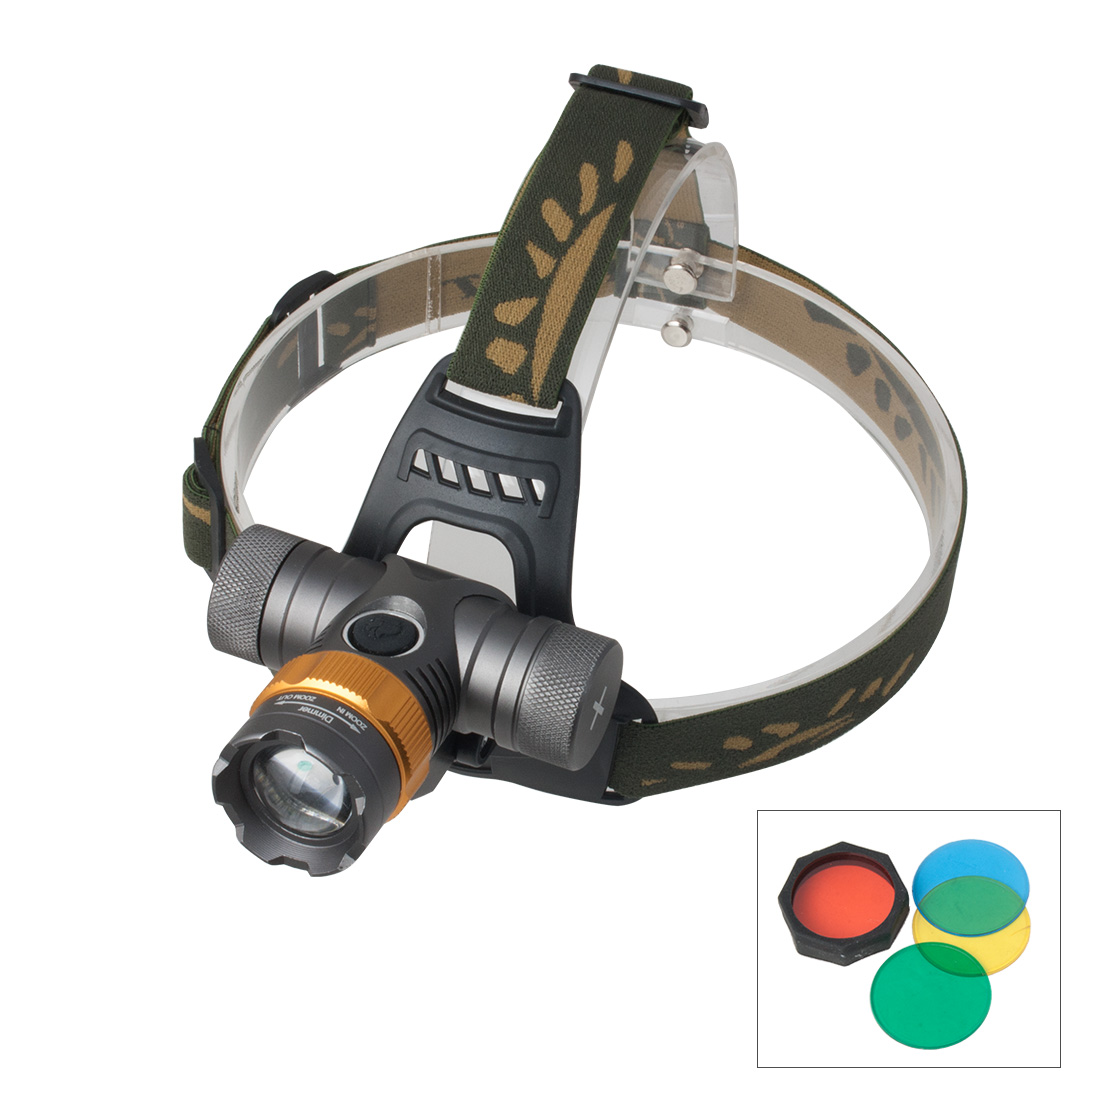 Zoom Zoomable Focus  Headlamp Bicycle Light Torch Lamp Super Bright 5 Modes